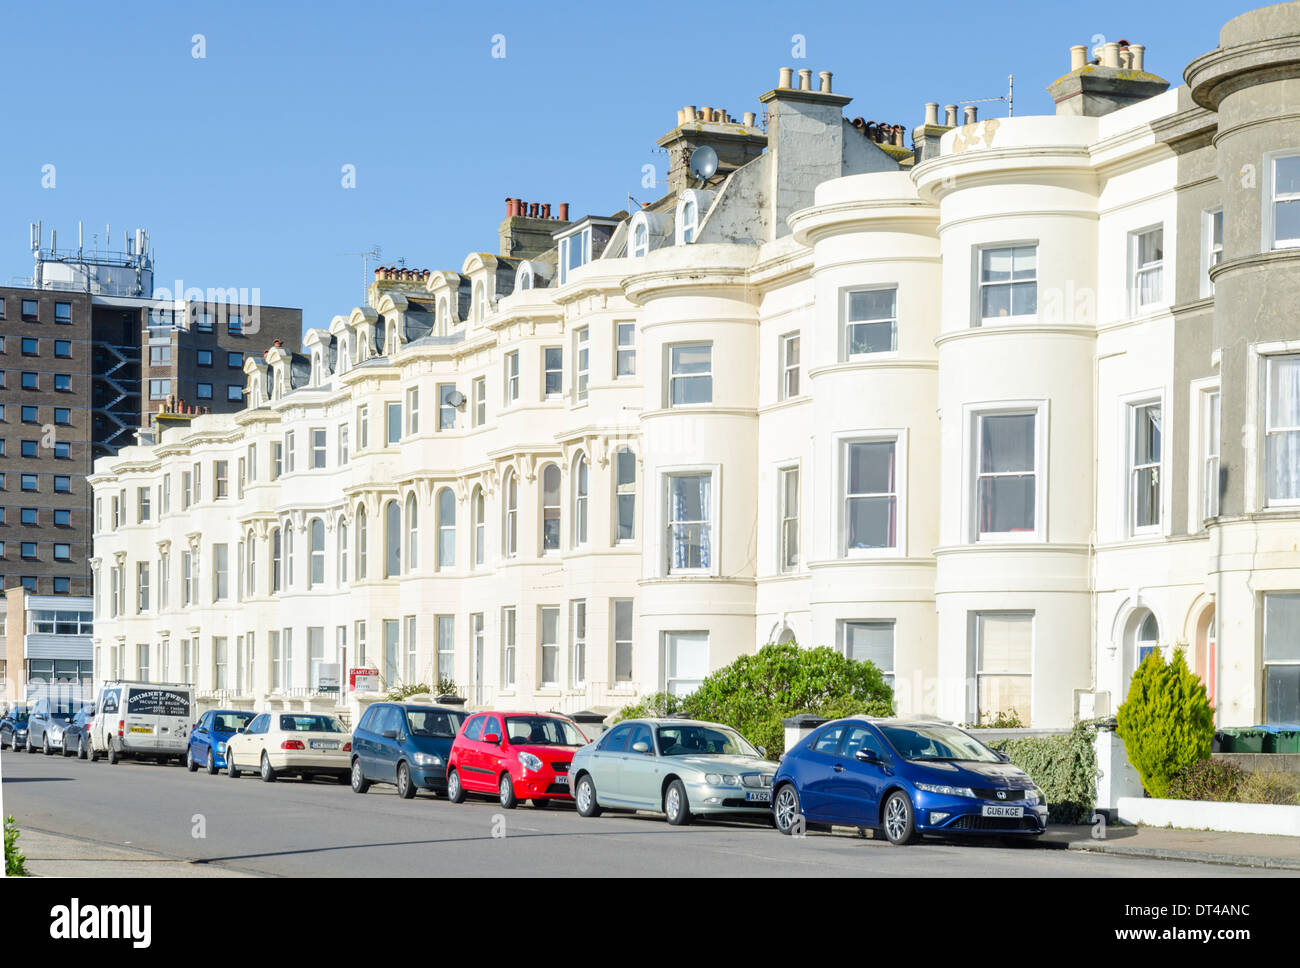 Victorian terraced housing on the coast of southern England. - Stock Image